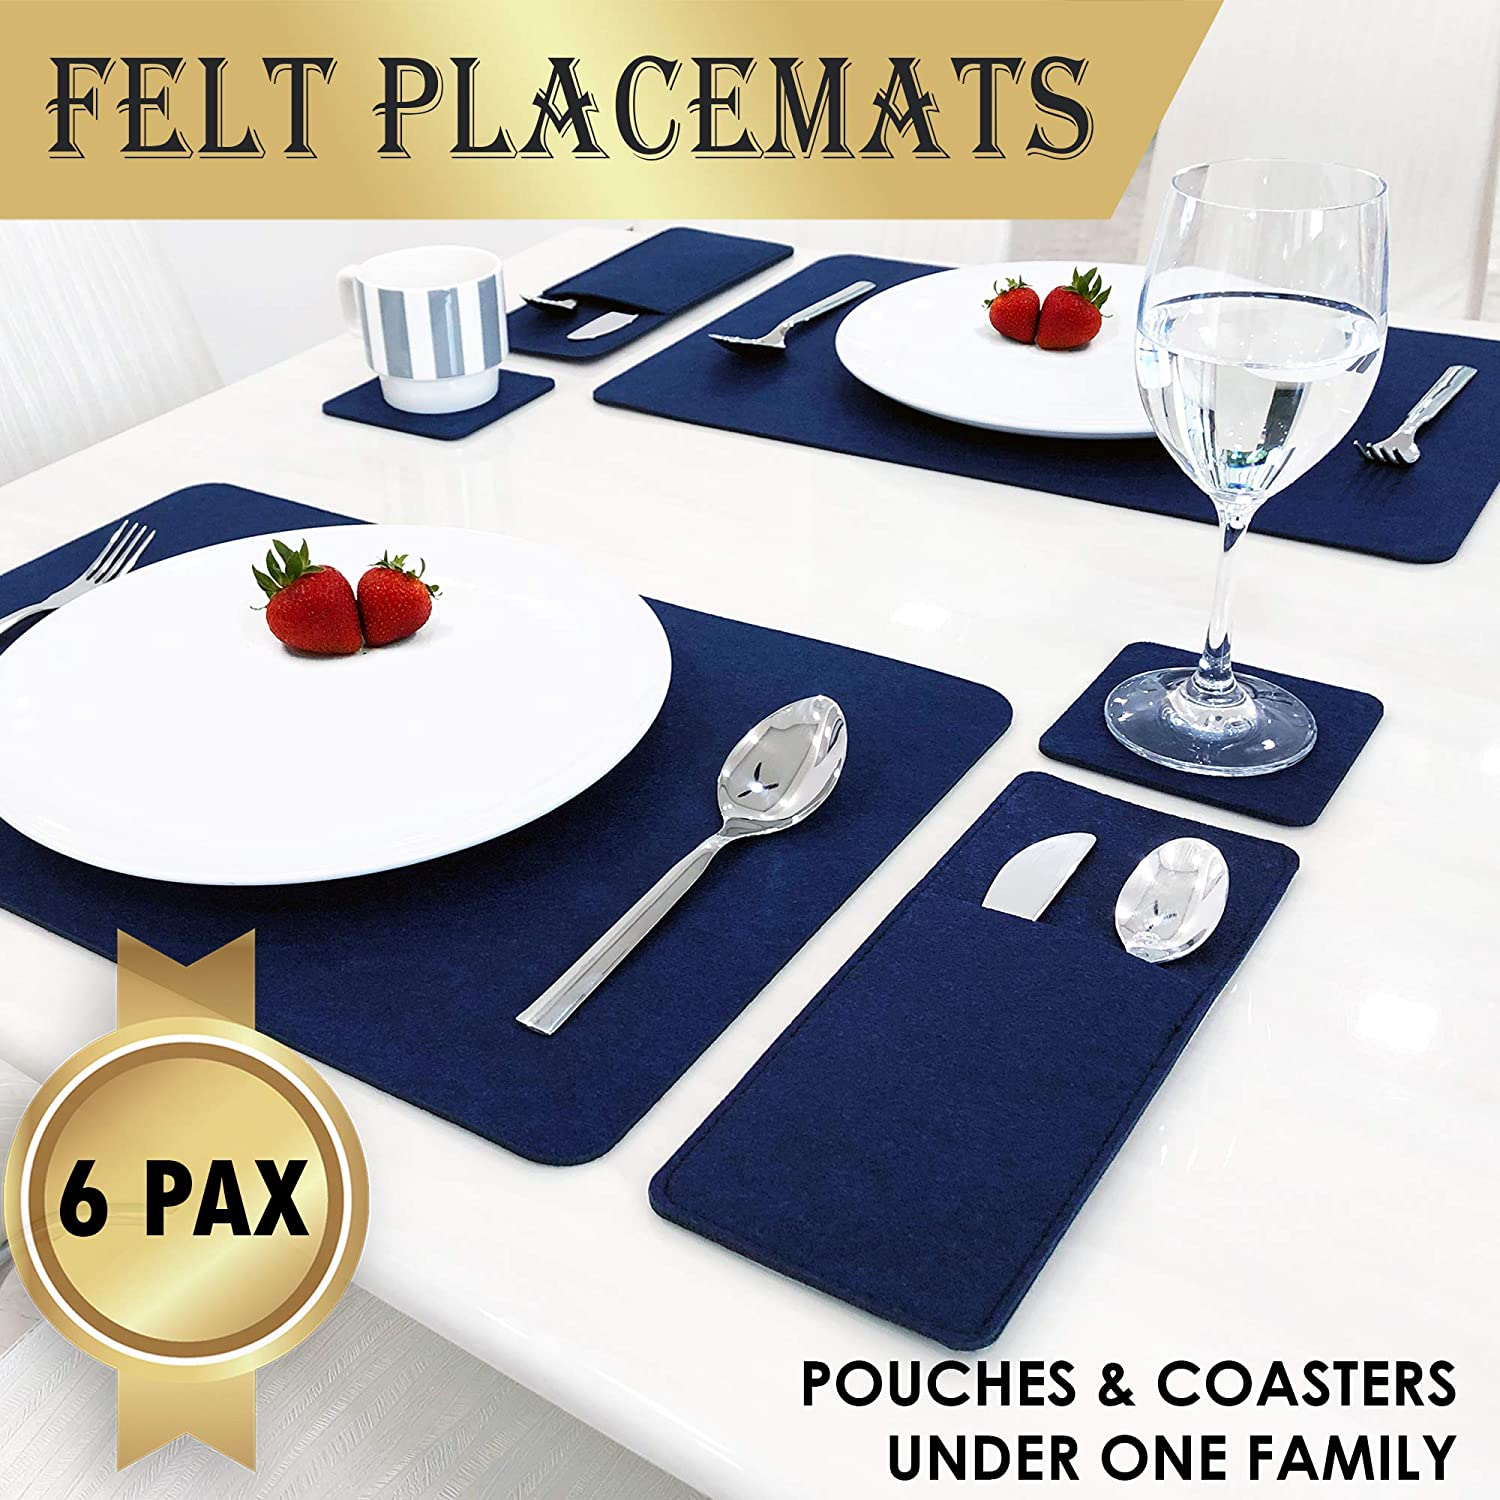 Set Of 6 Placemats For Dining Table - 6 Table Placemats, Drink Coasters And Cutlery Pouch Holder - Protective Dining Table Mats And Dining Table Placemats - House Warming Gifts New Home (blue)